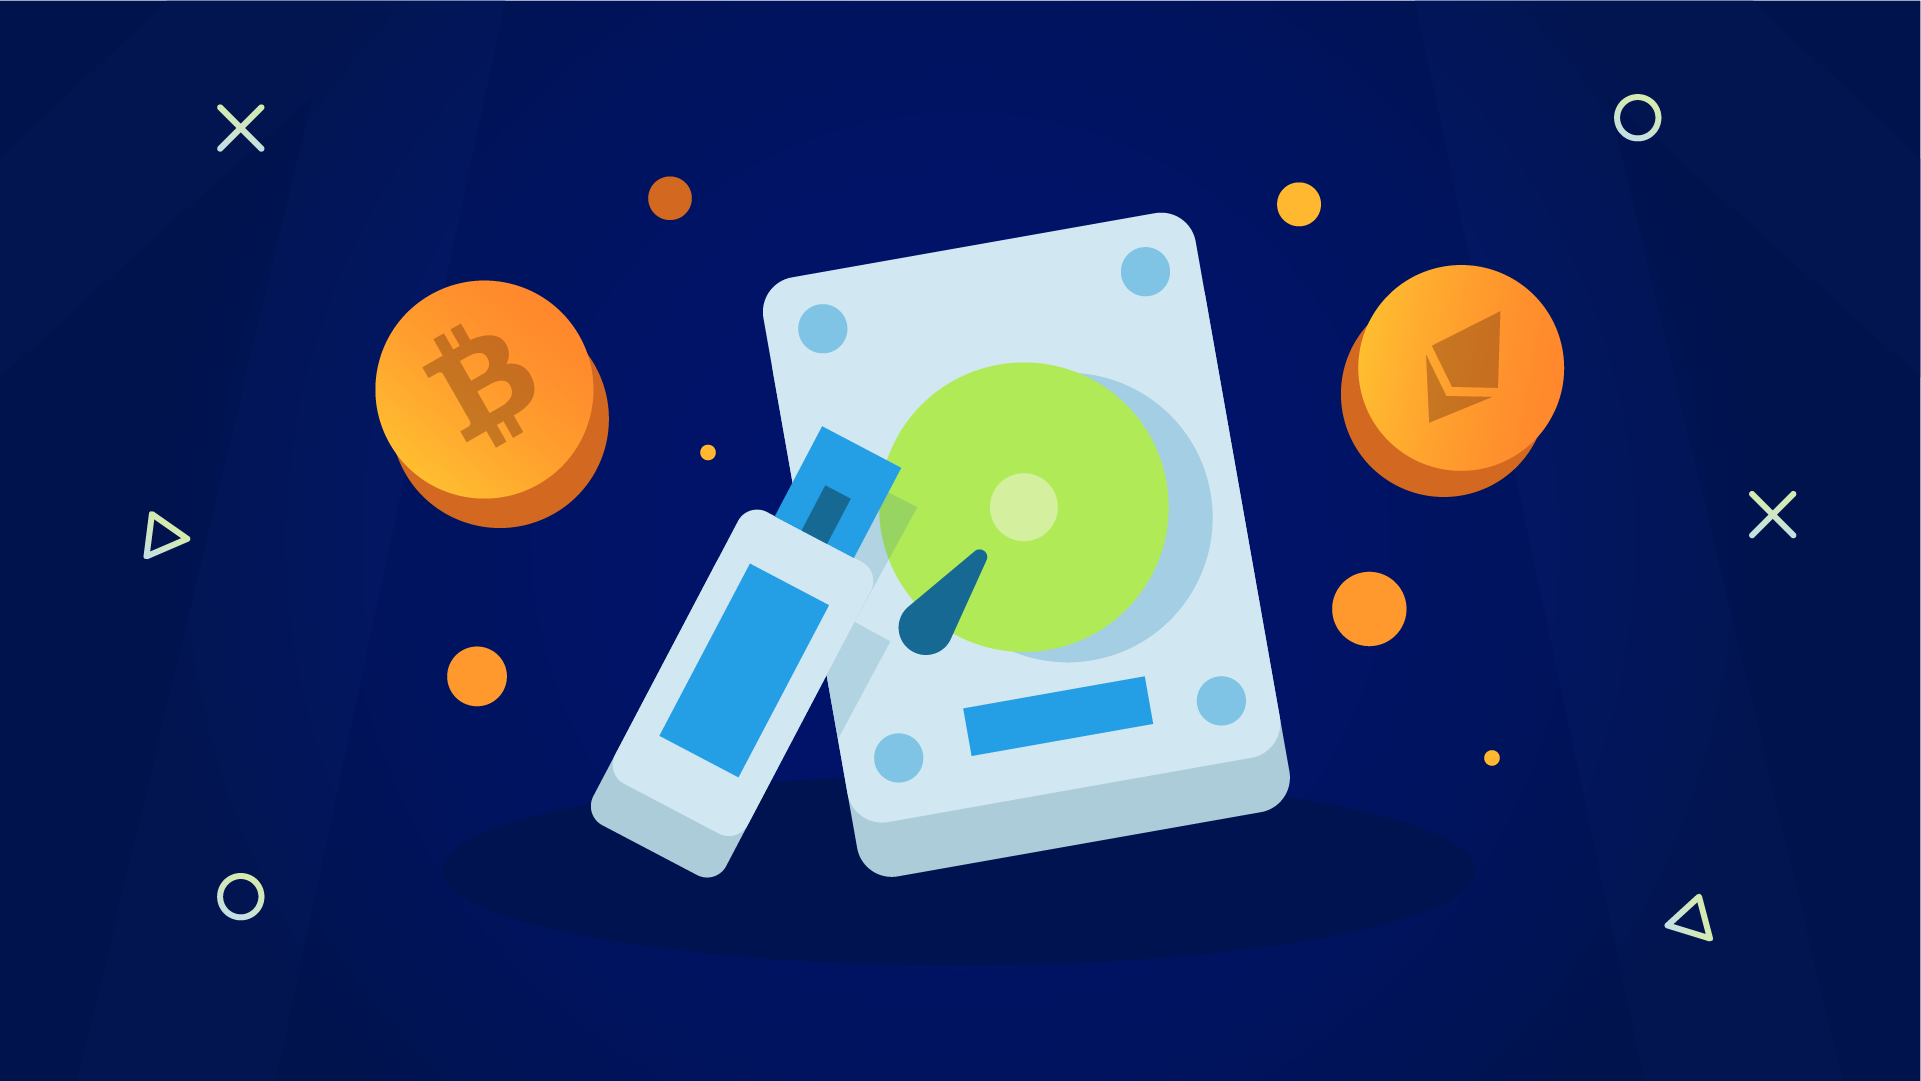 Top 5 Privacy-focused Crypto Wallets in 2020